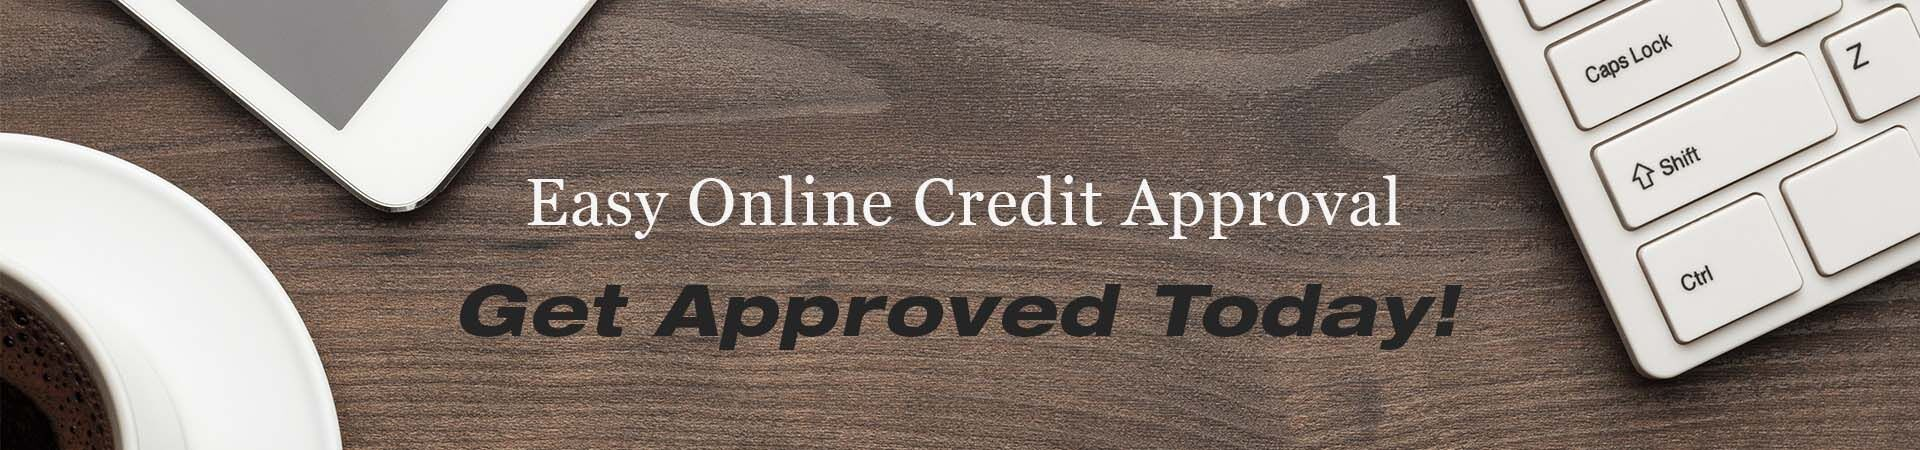 Easy Credit Approval in Orlando, FL